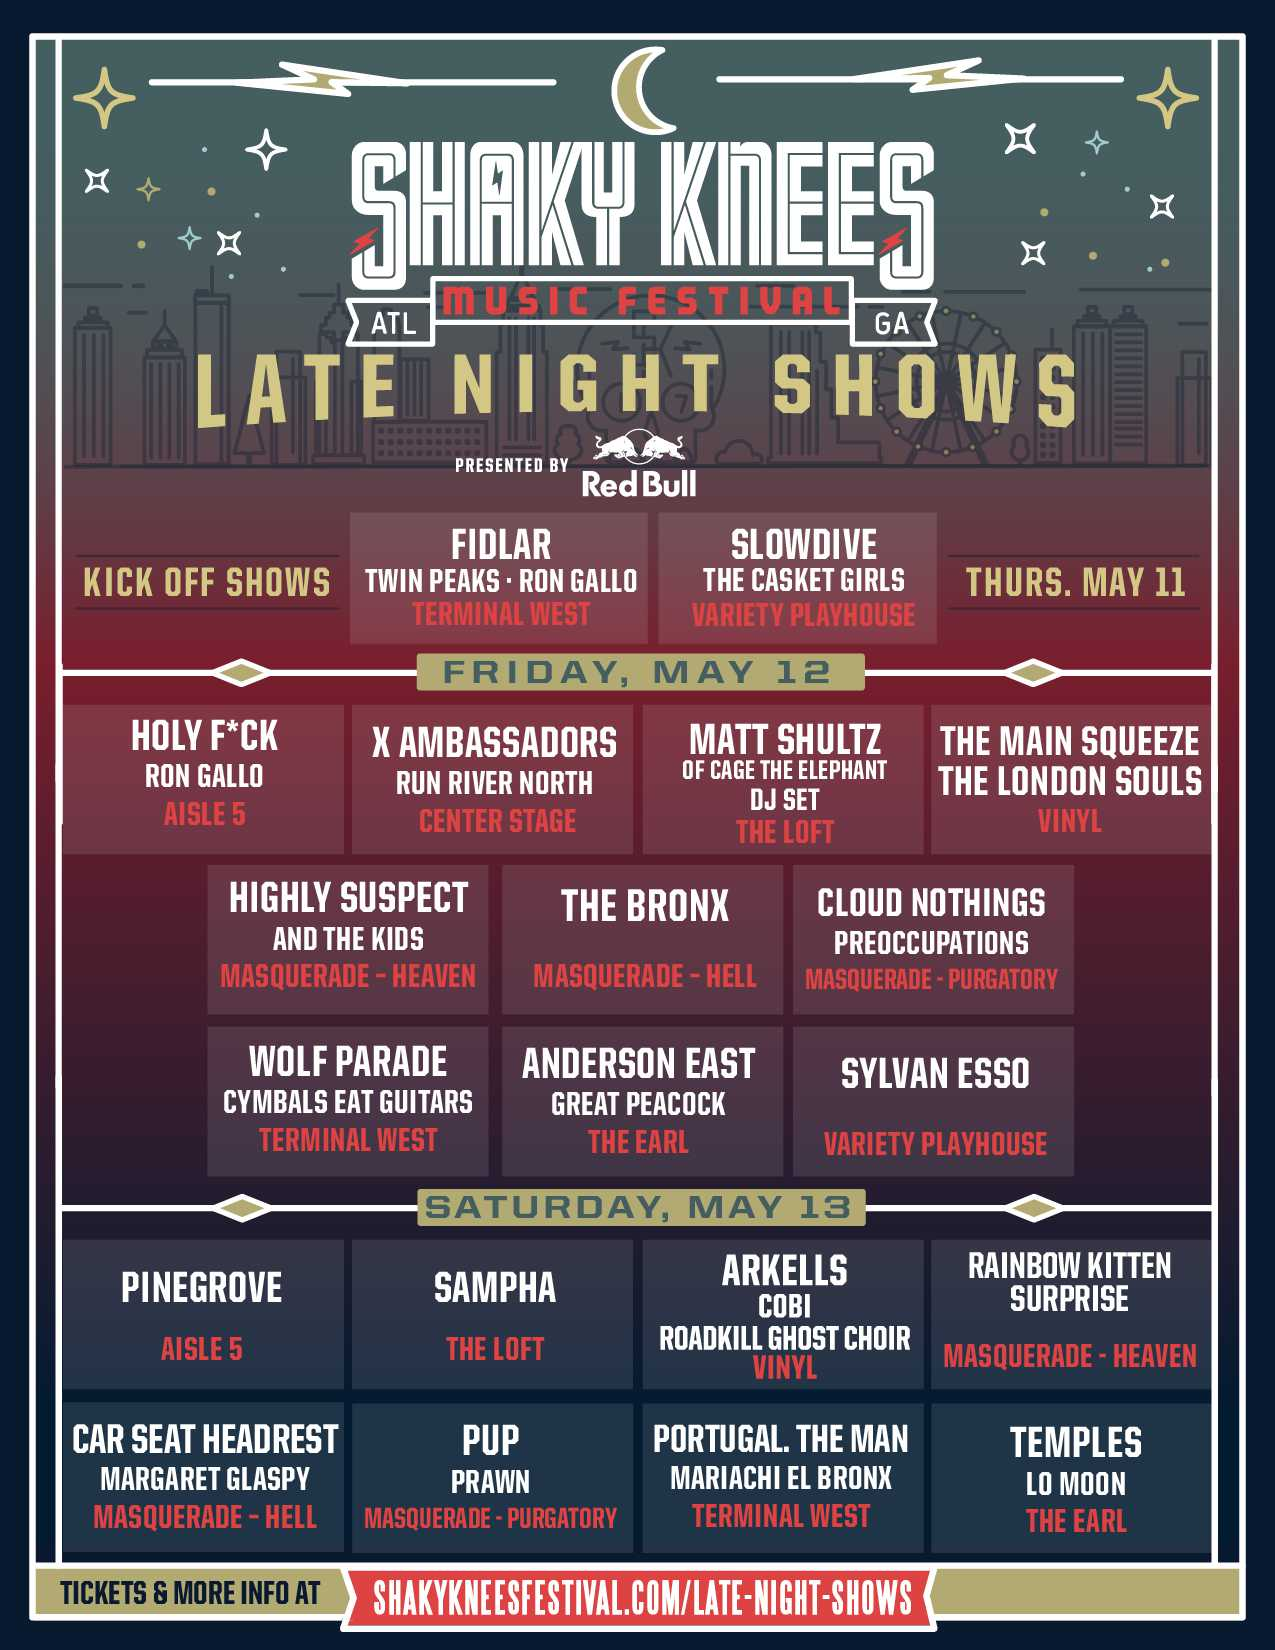 Shaky Knees Late Night